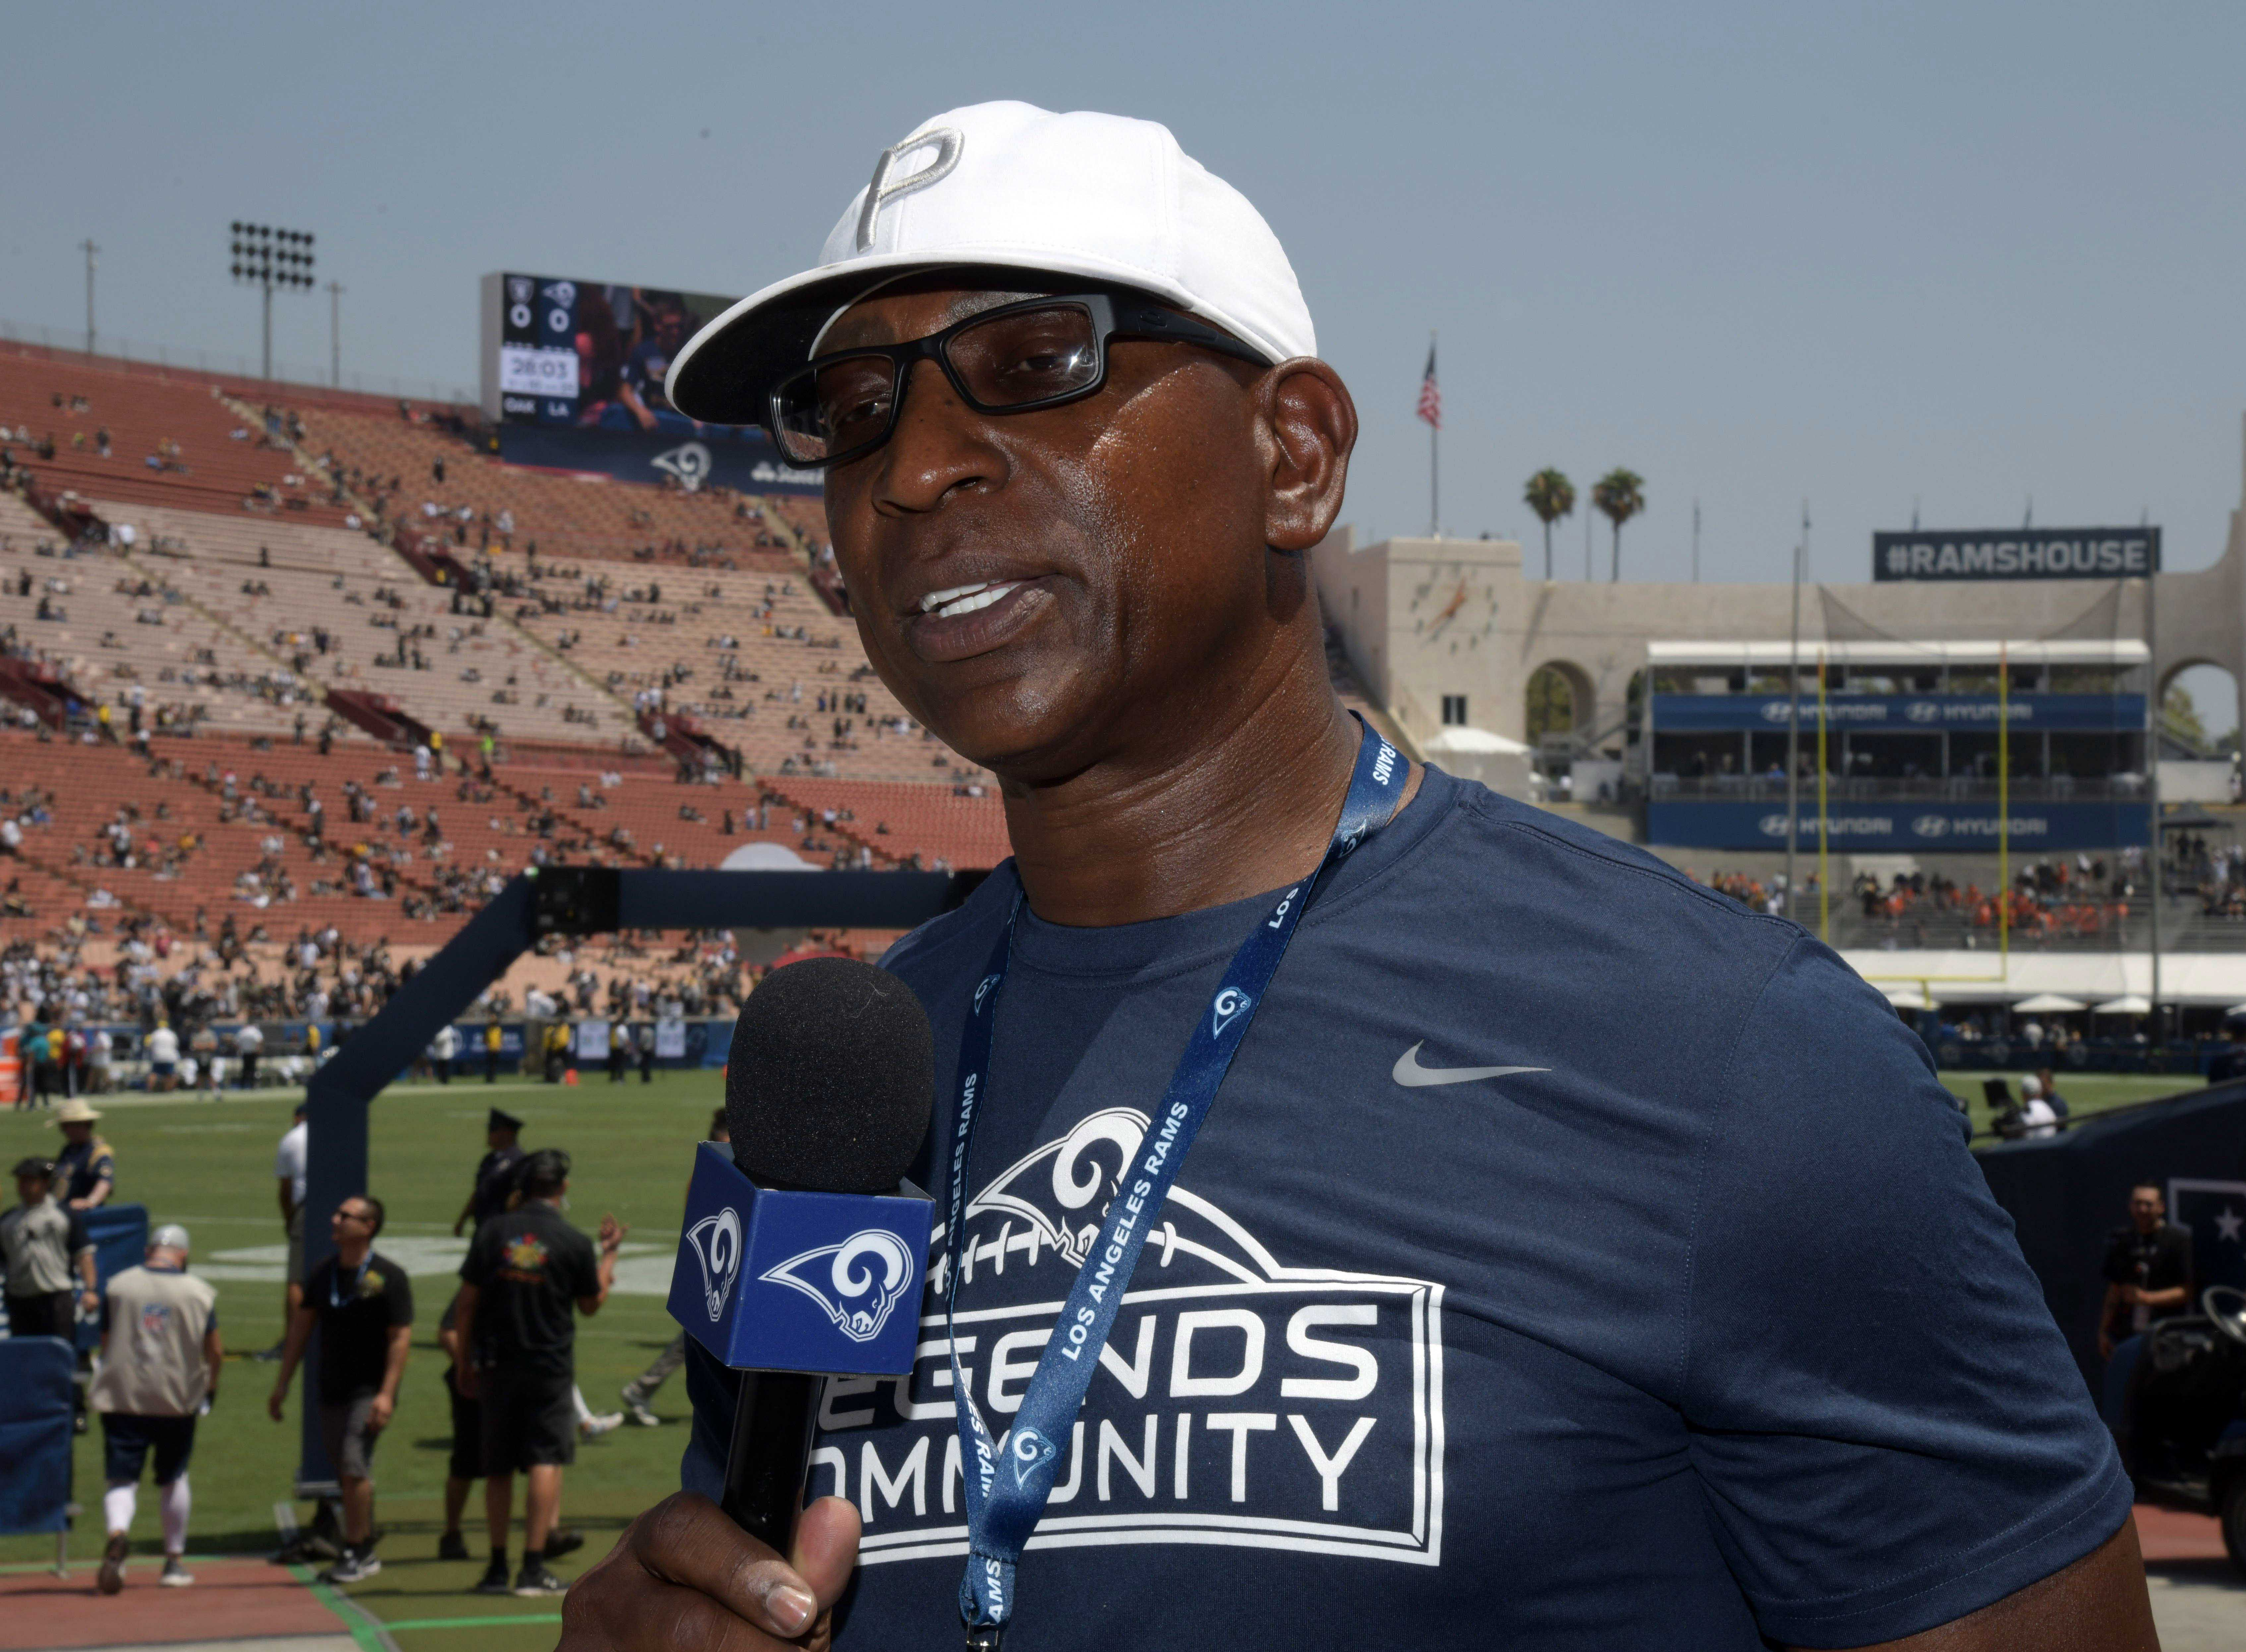 Eric Dickerson not surprised by Colts fans booing Andrew Luck, given the racist taunts he once received